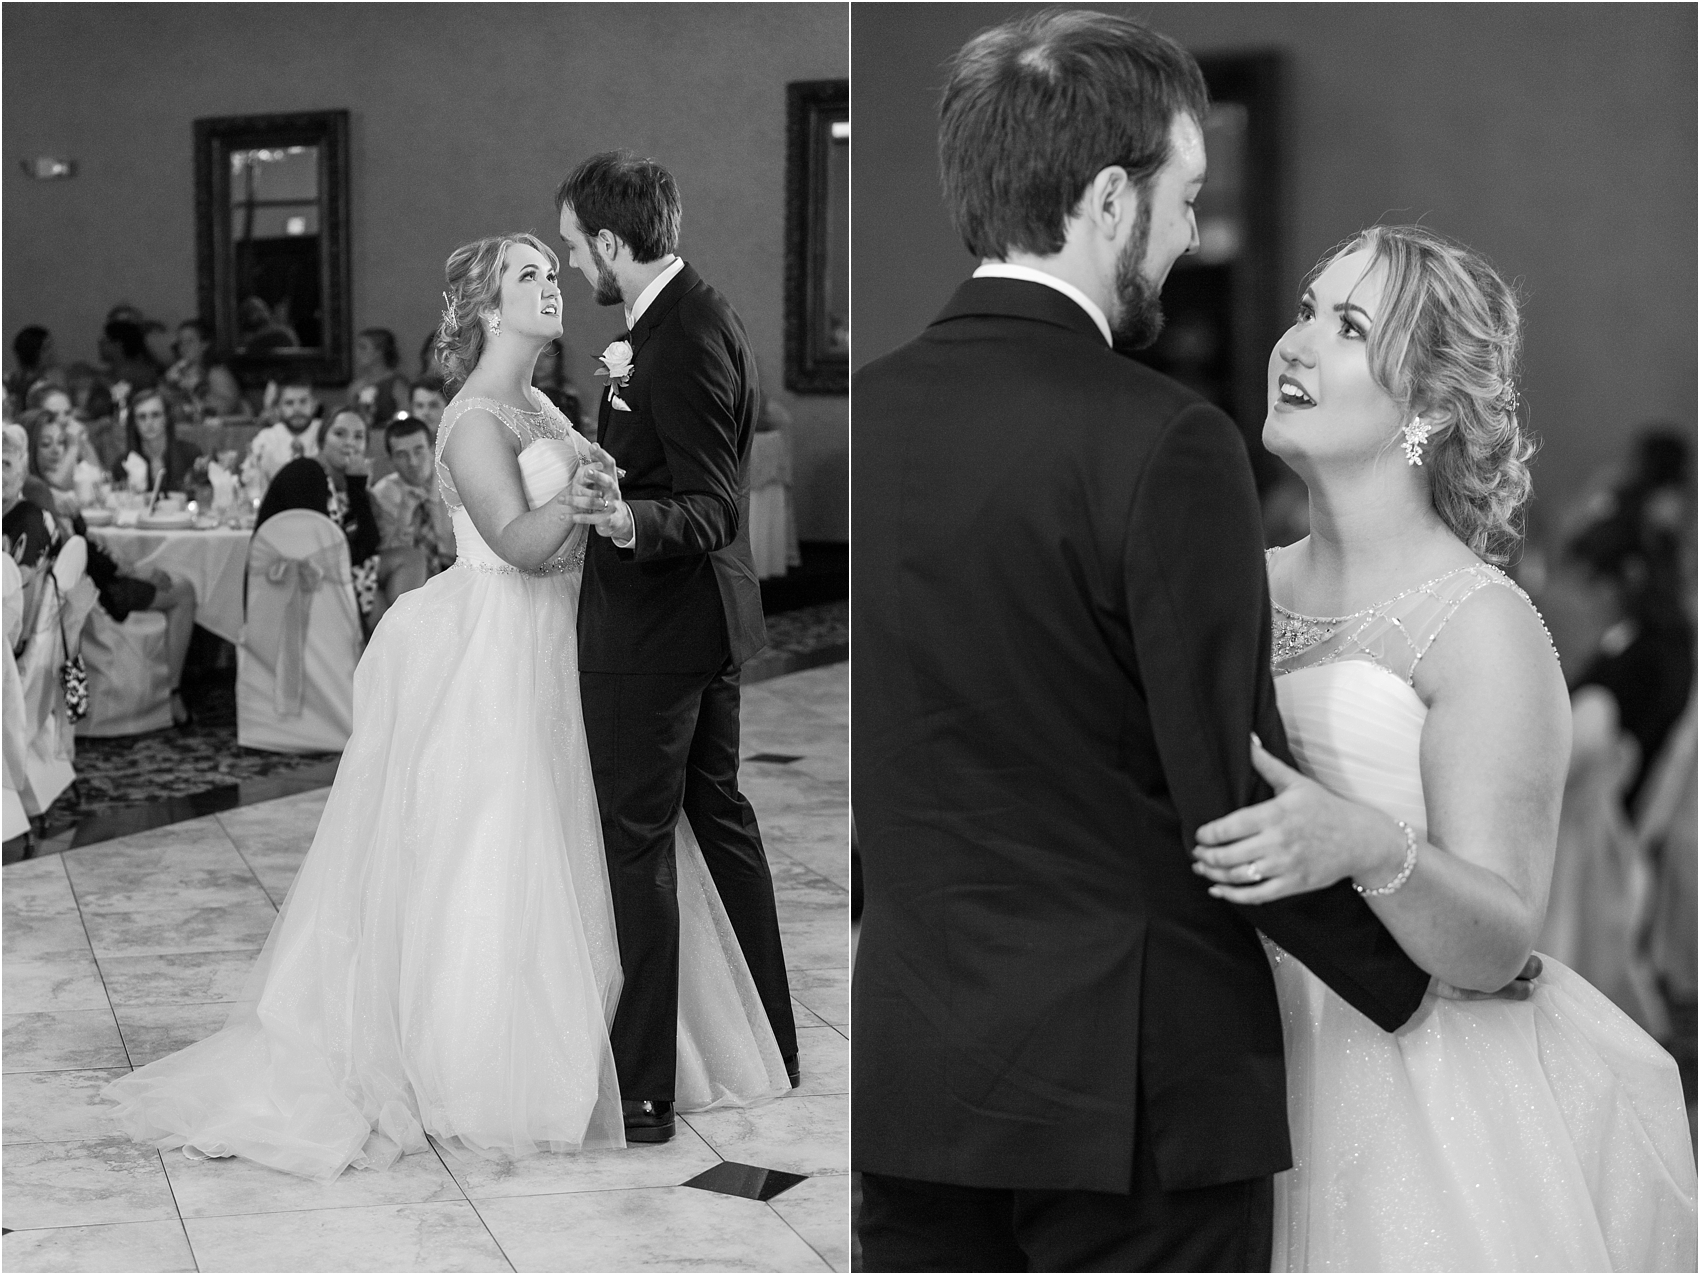 lord-of-the-rings-inspired-wedding-photos-at-crystal-gardens-in-howell-mi-by-courtney-carolyn-photography_0070.jpg